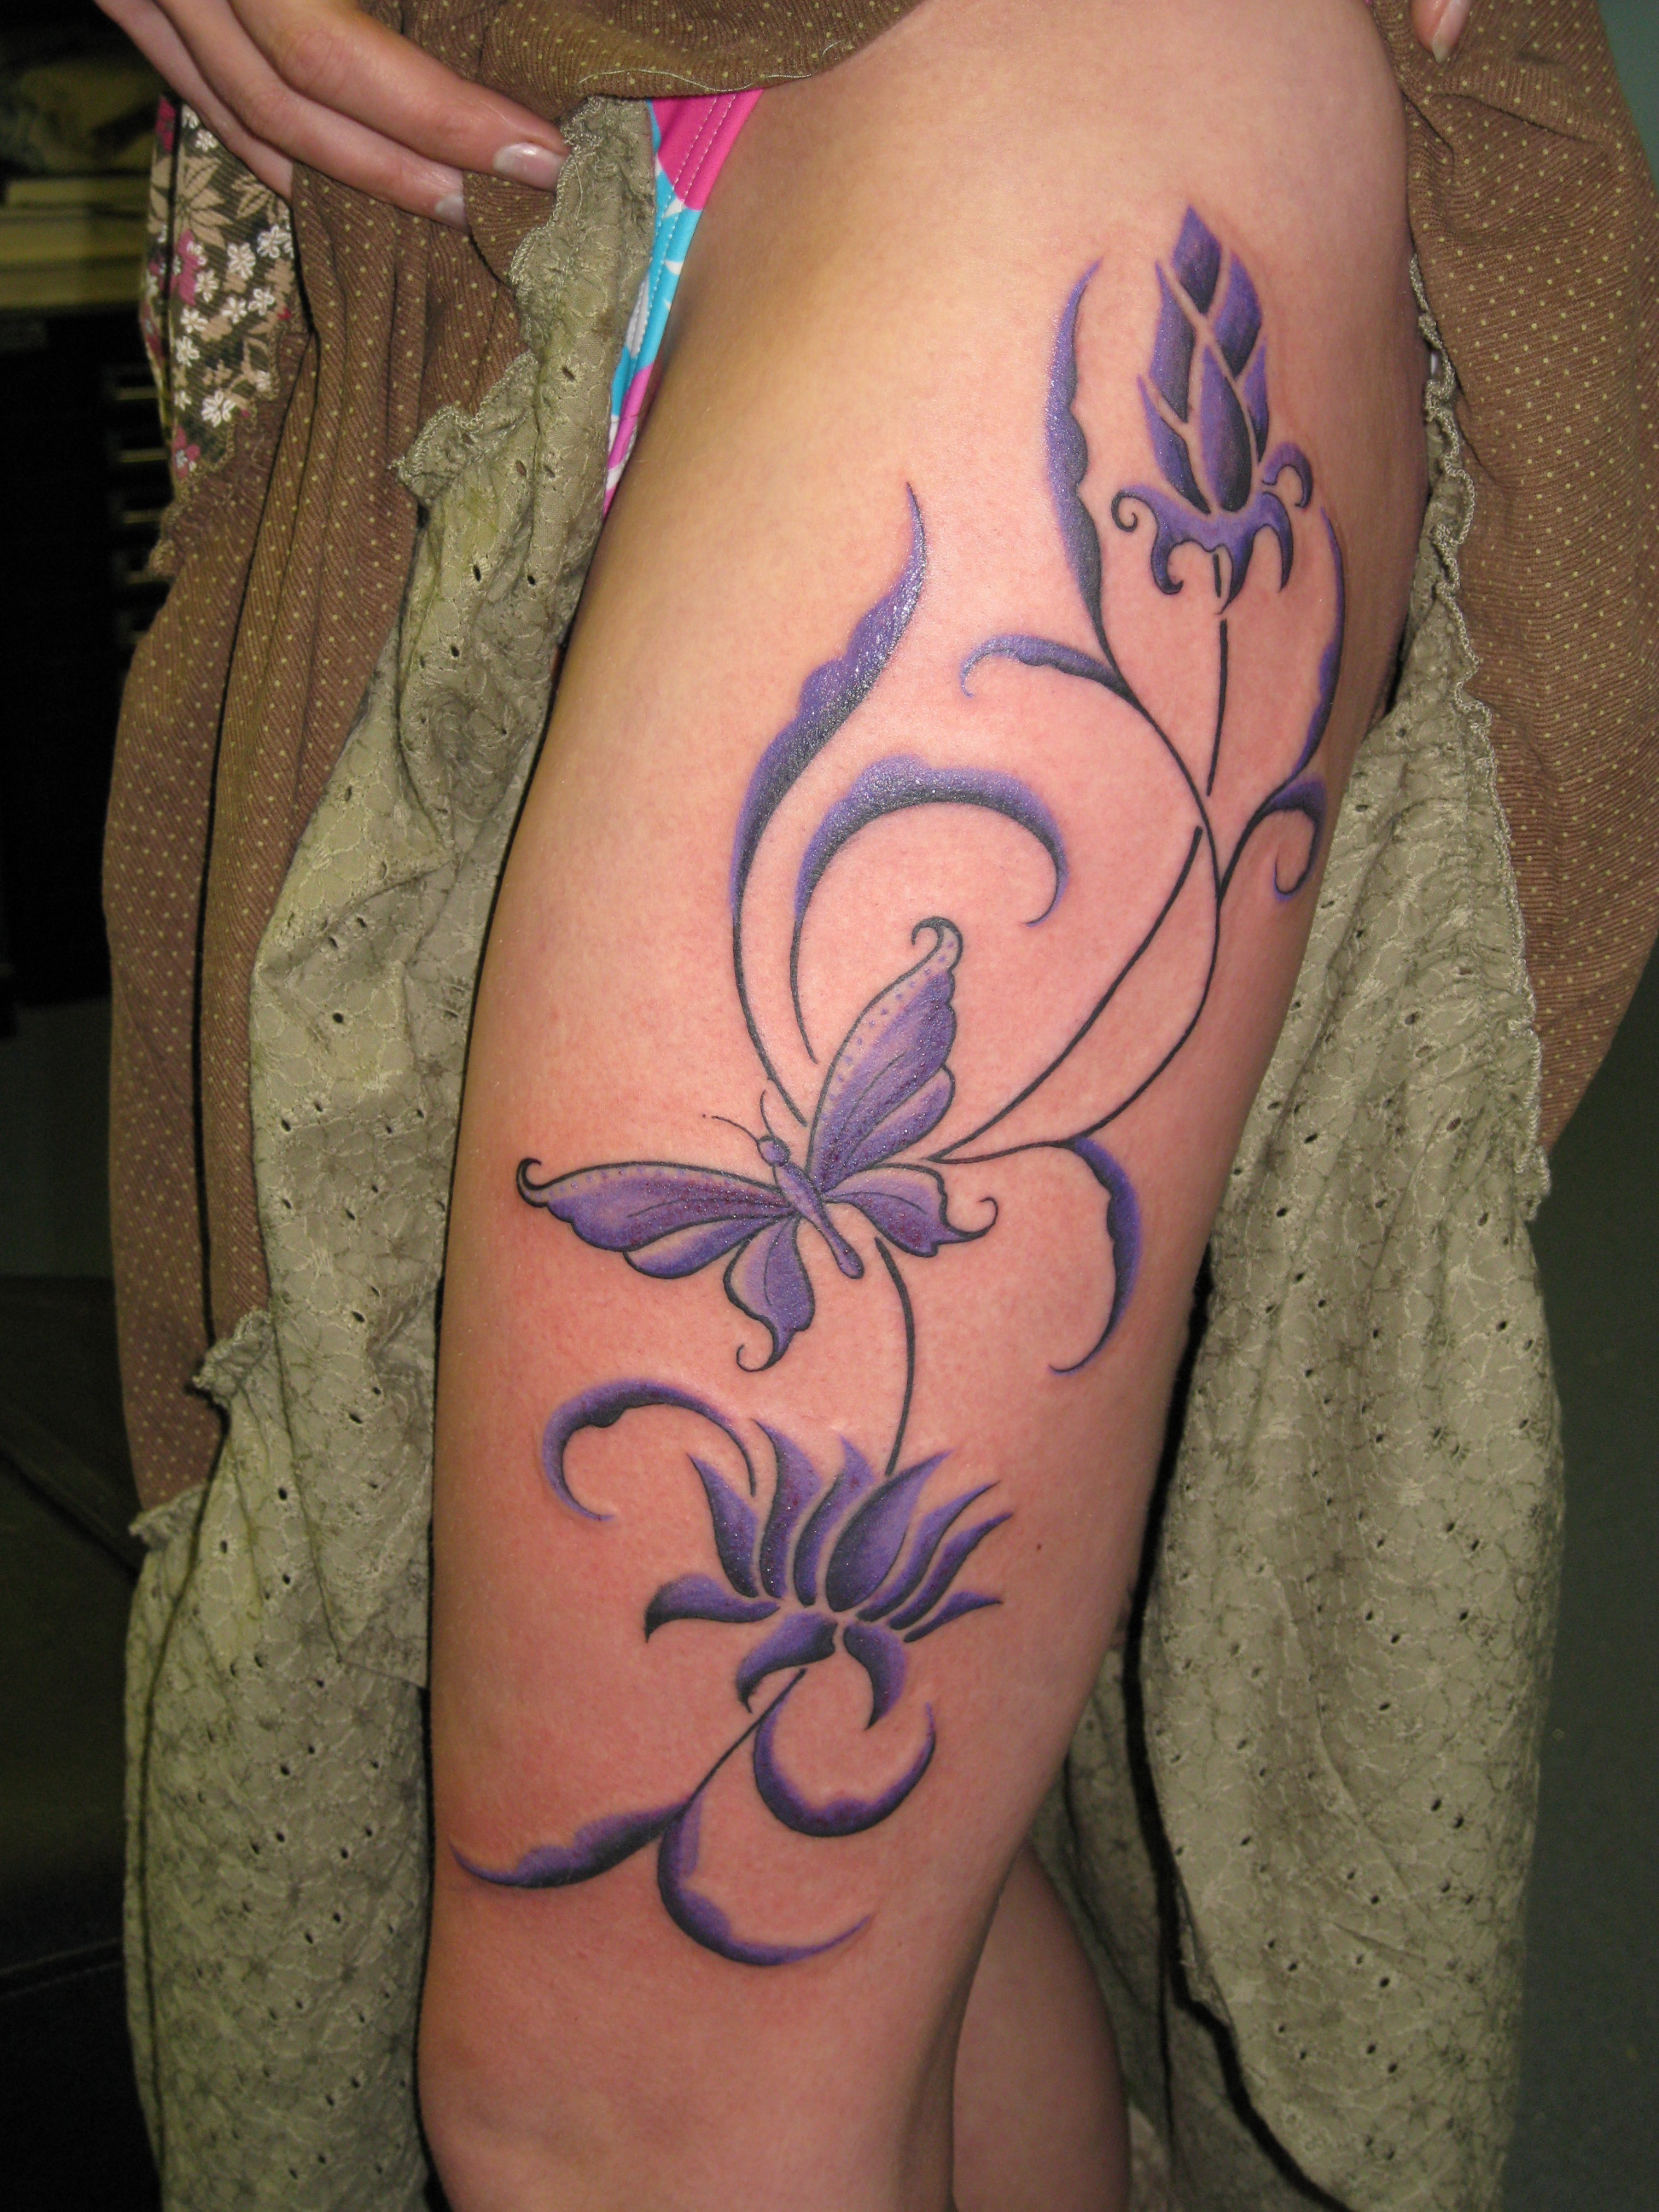 Butterfly thigh tattoo.